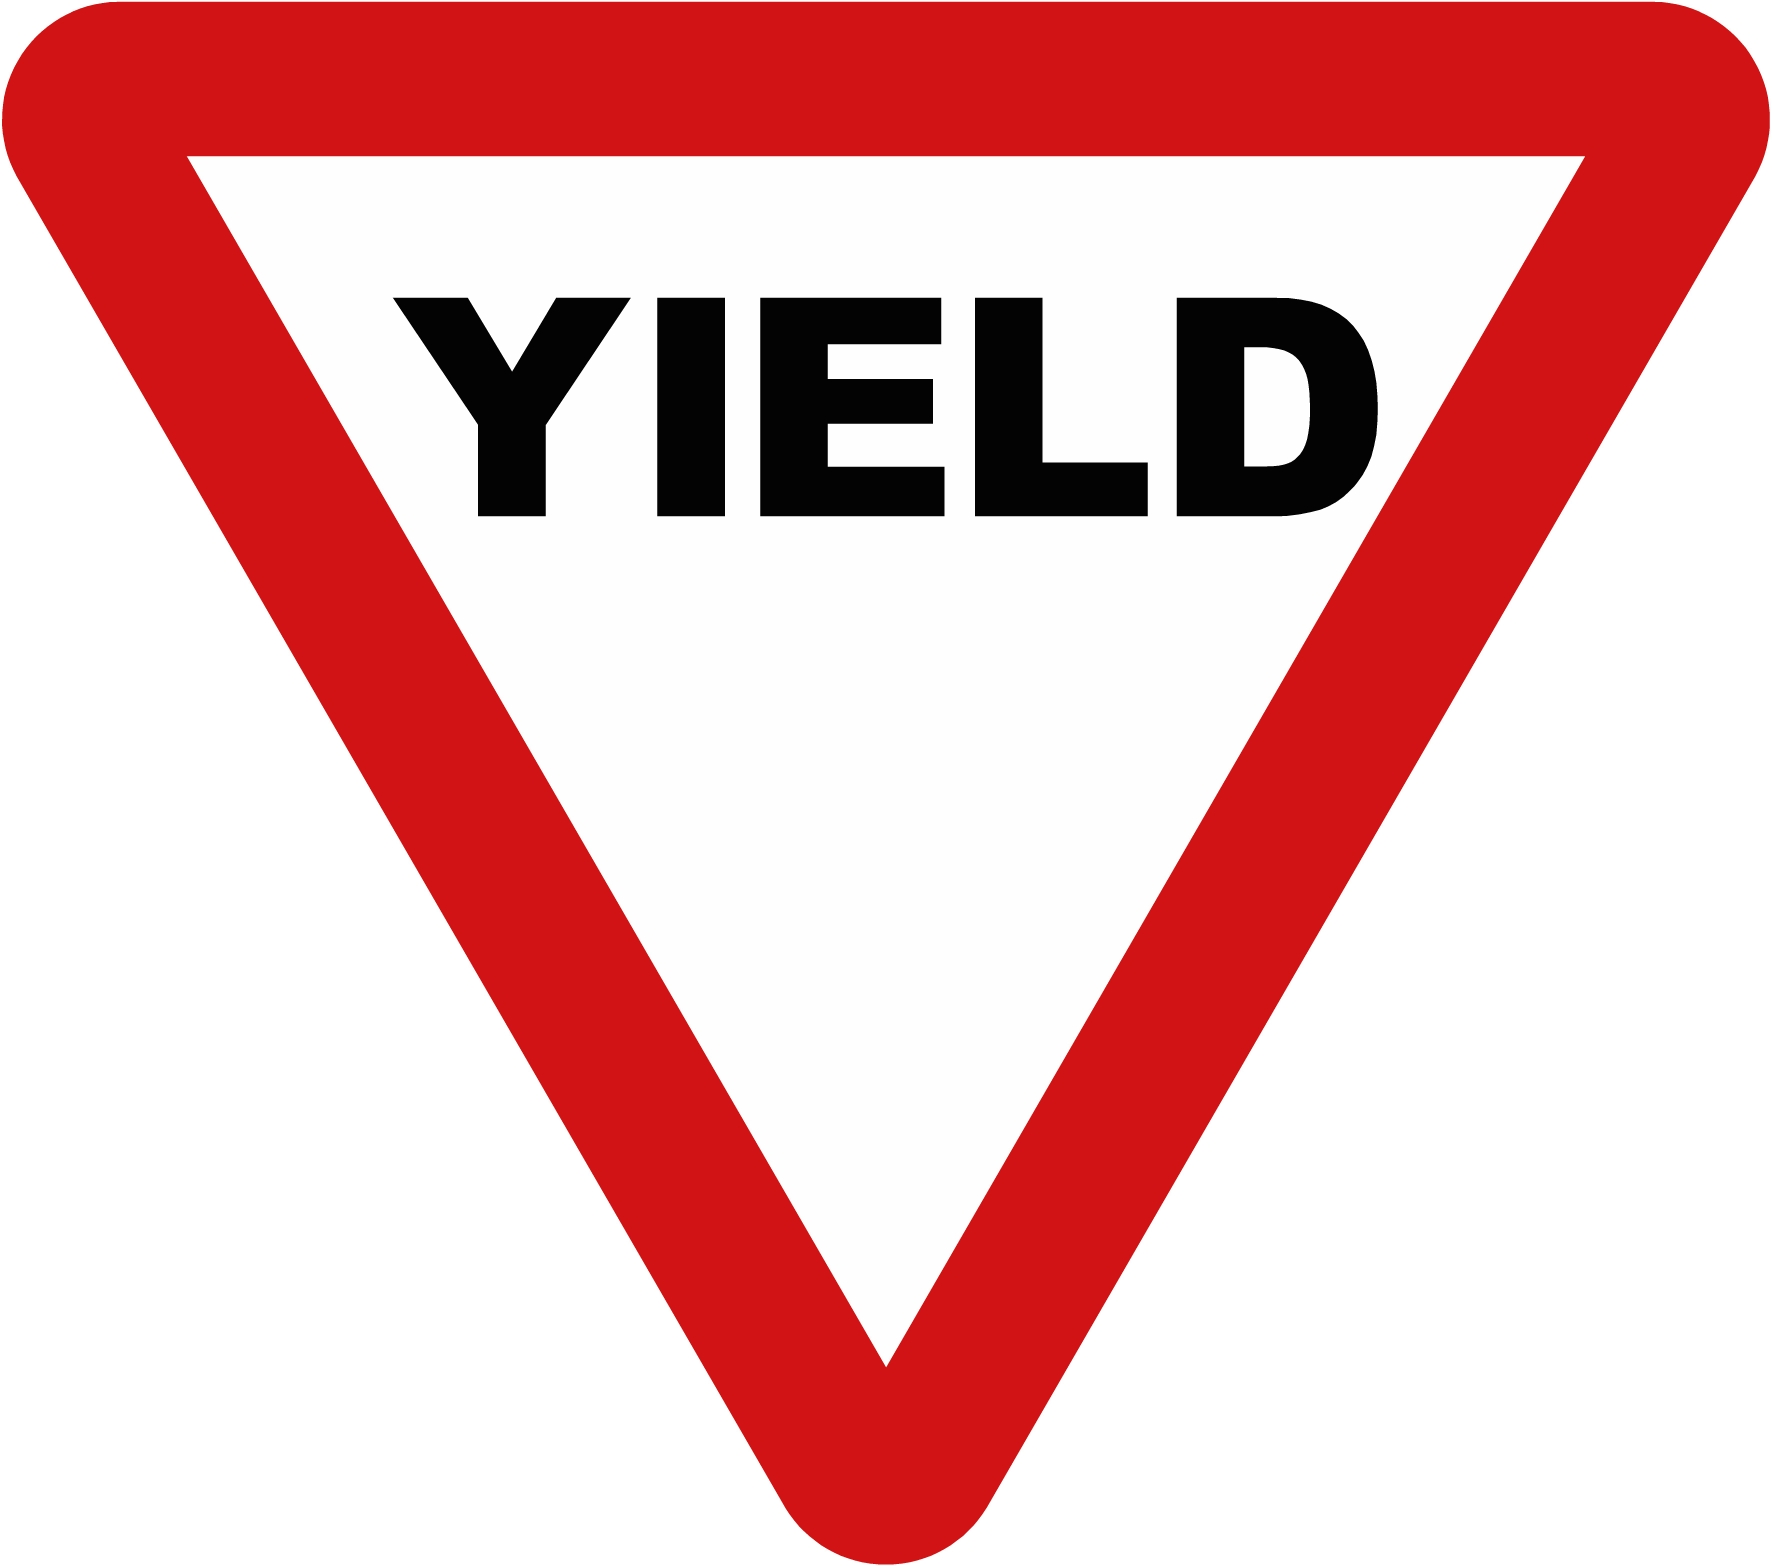 yield sign clipart-yield sign clipart-6